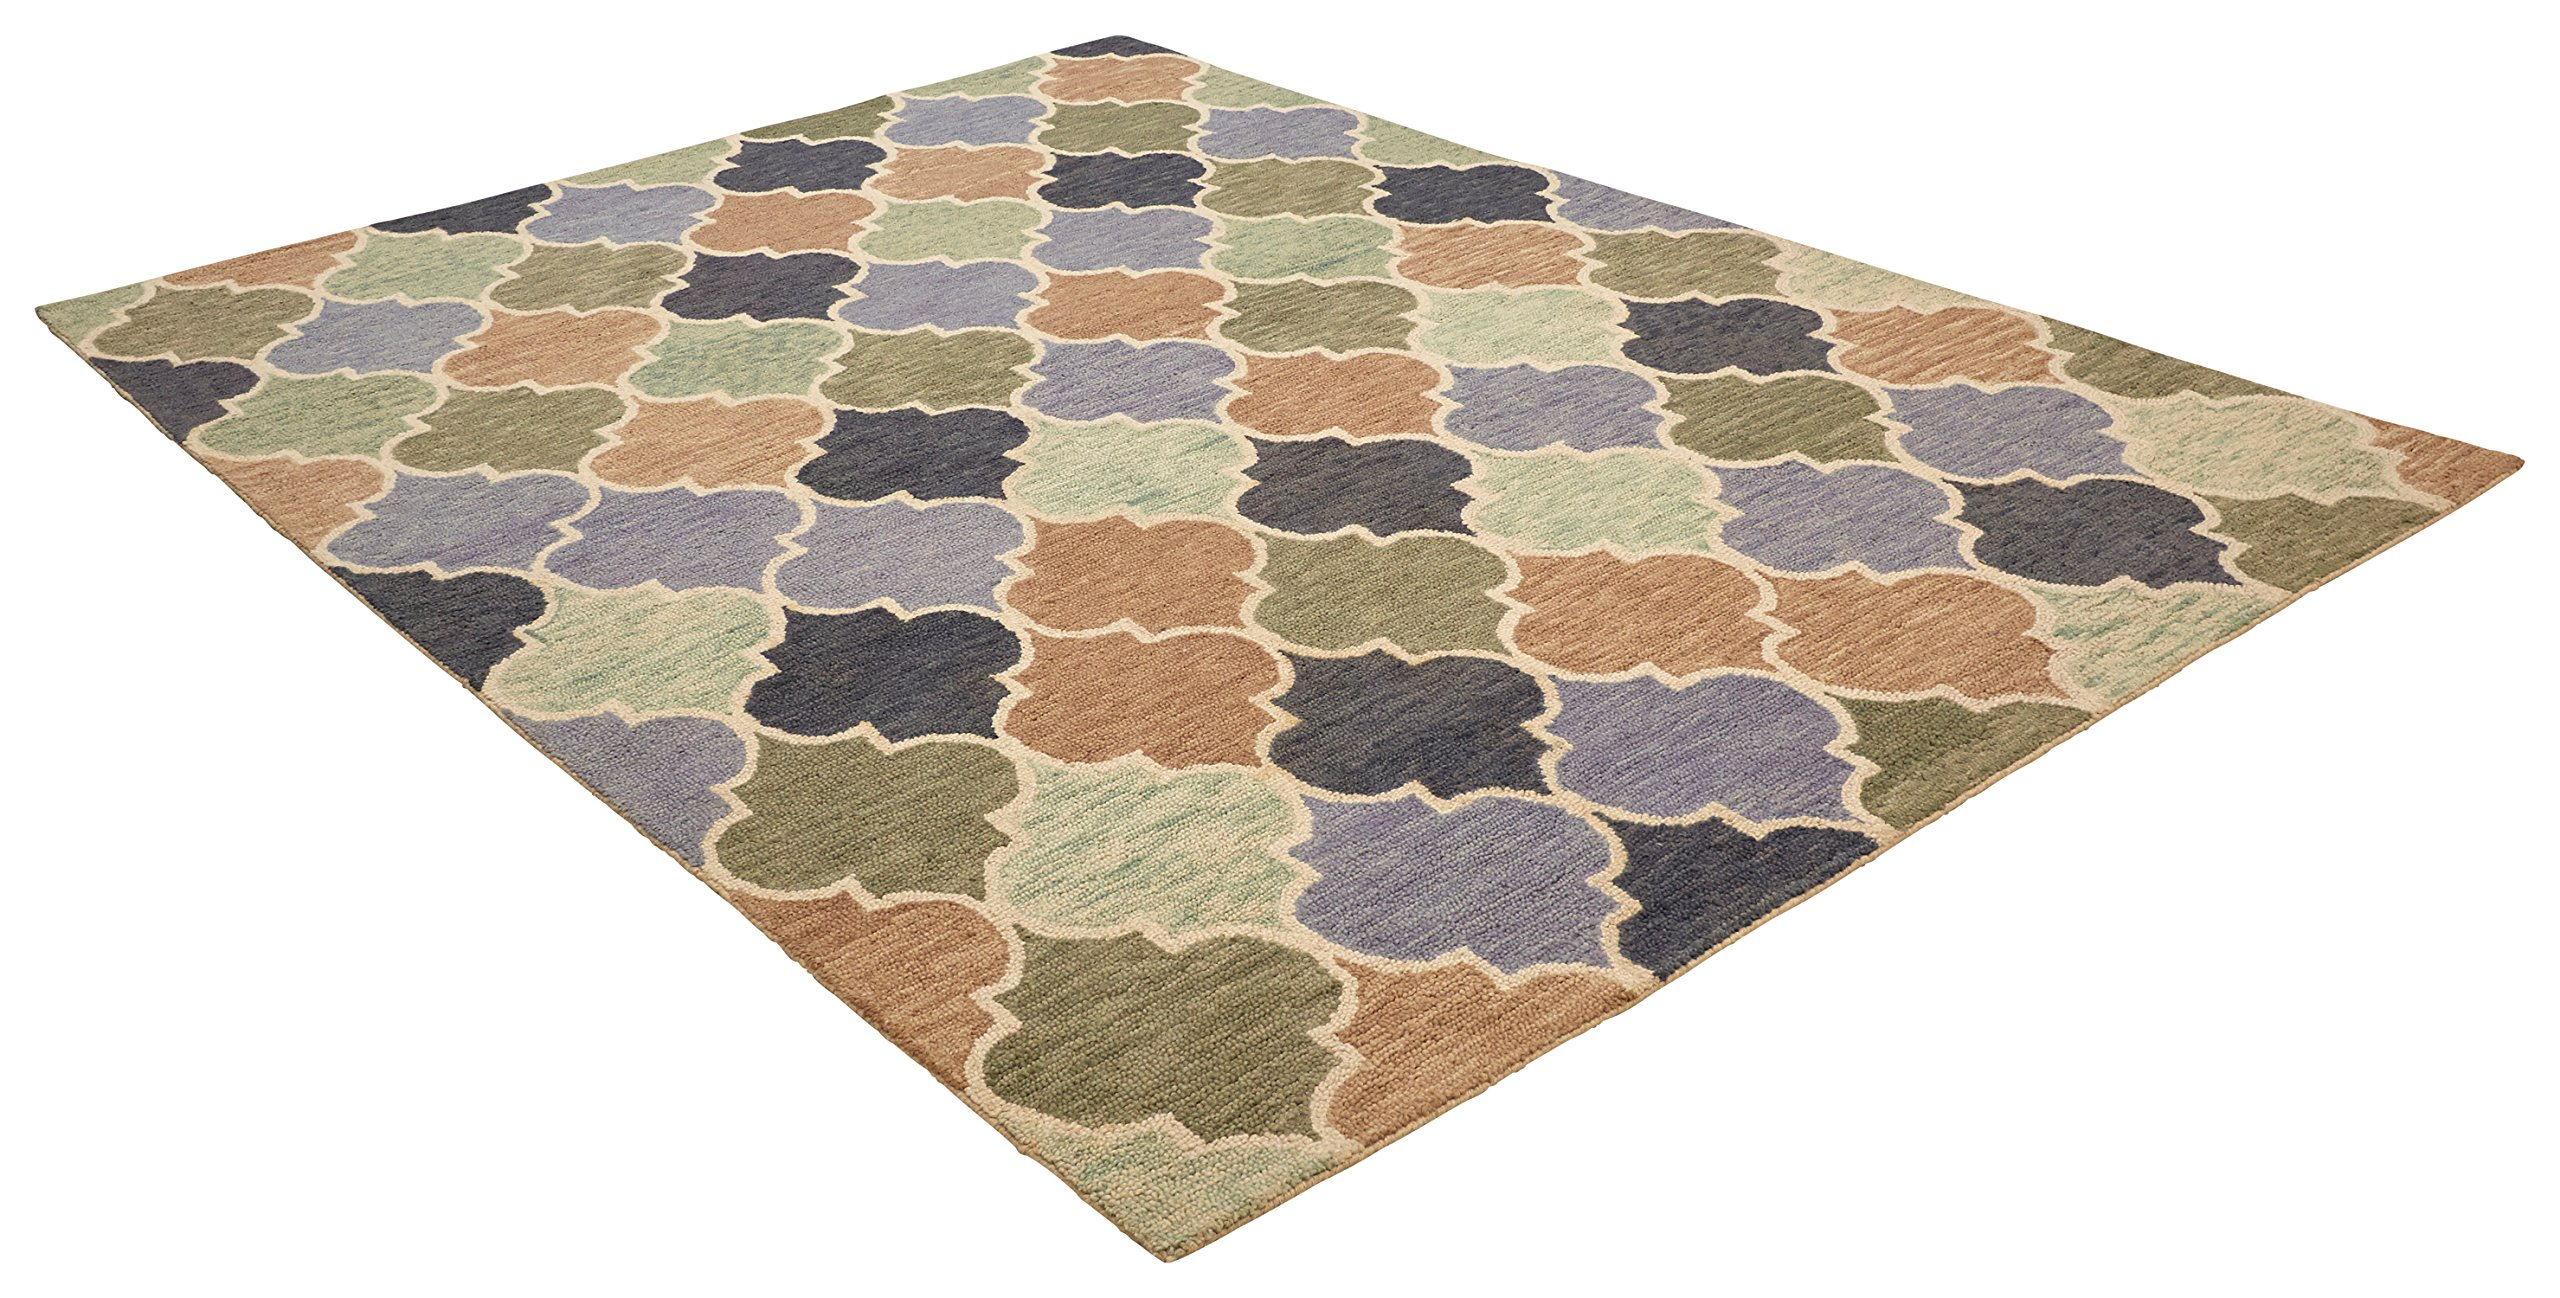 Stone & Beam Quarterfoil Wool Area Rug, 4' x 6', Light Multi by Stone & Beam (Image #3)